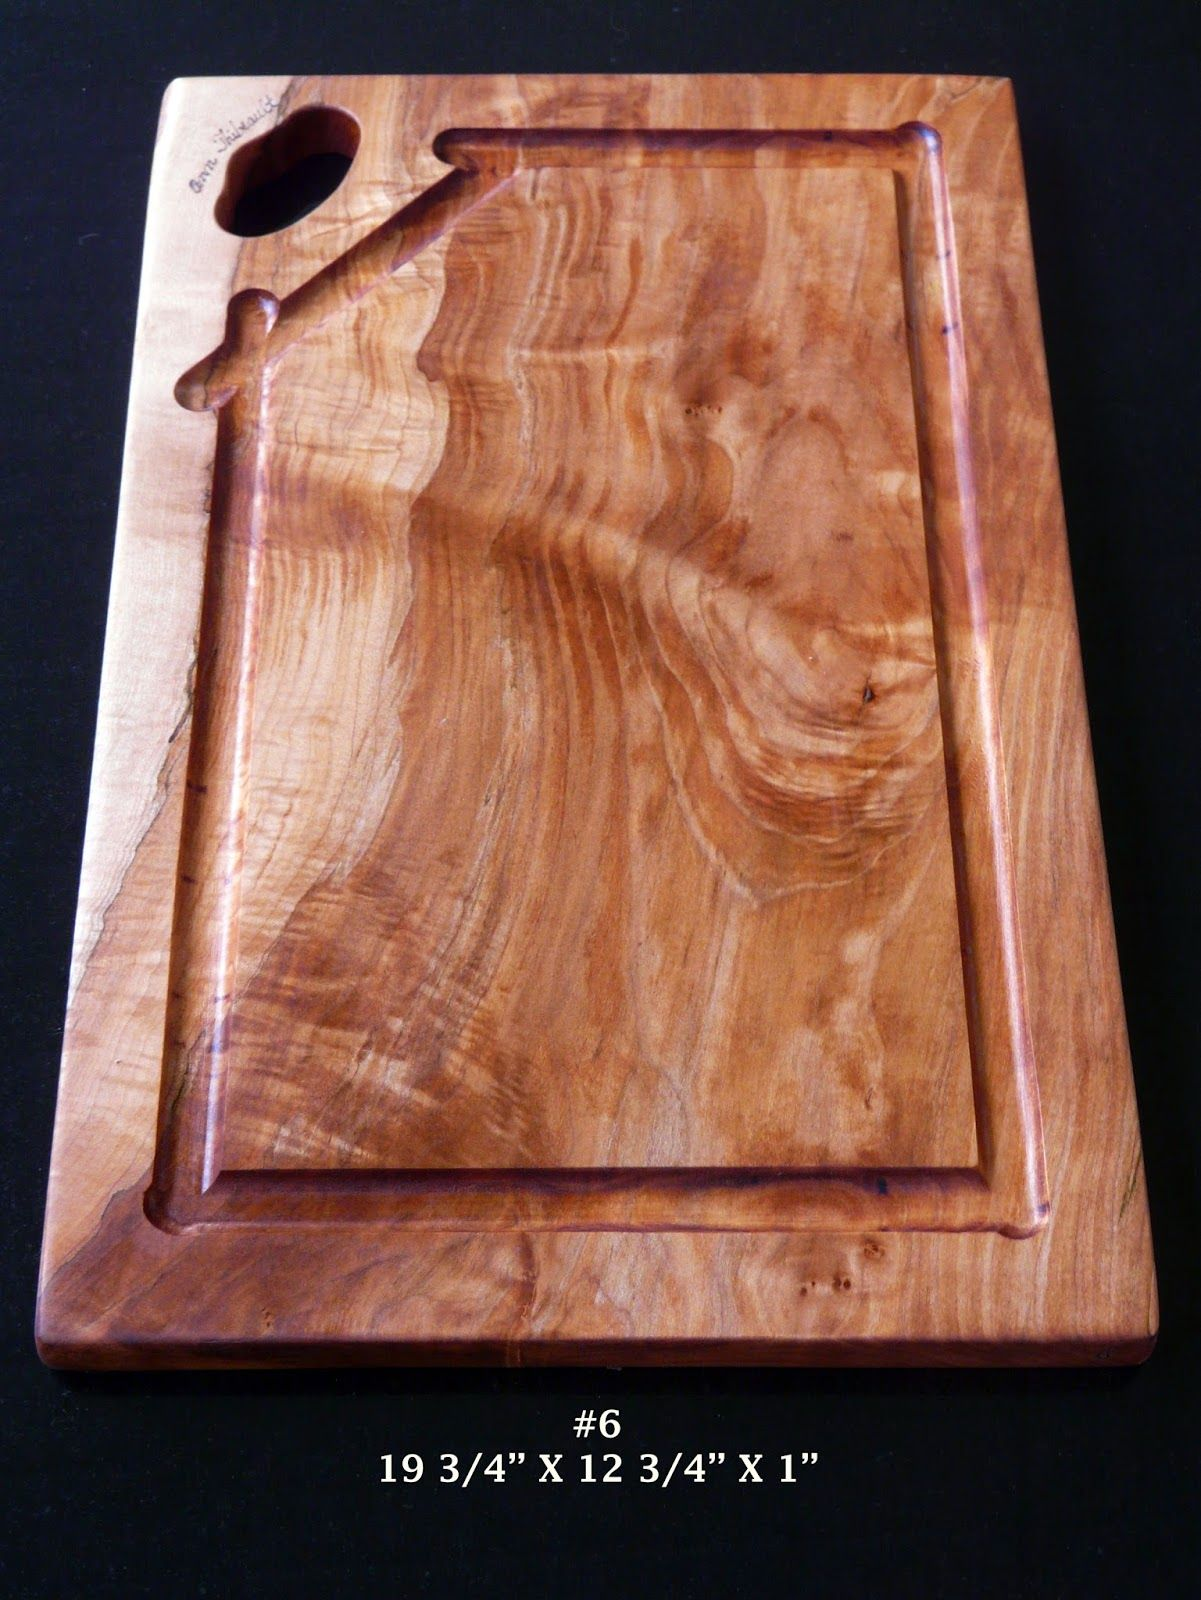 Functional art-  Carving Boards and Chopping Blocks | The Maple Cutting Board Gallery